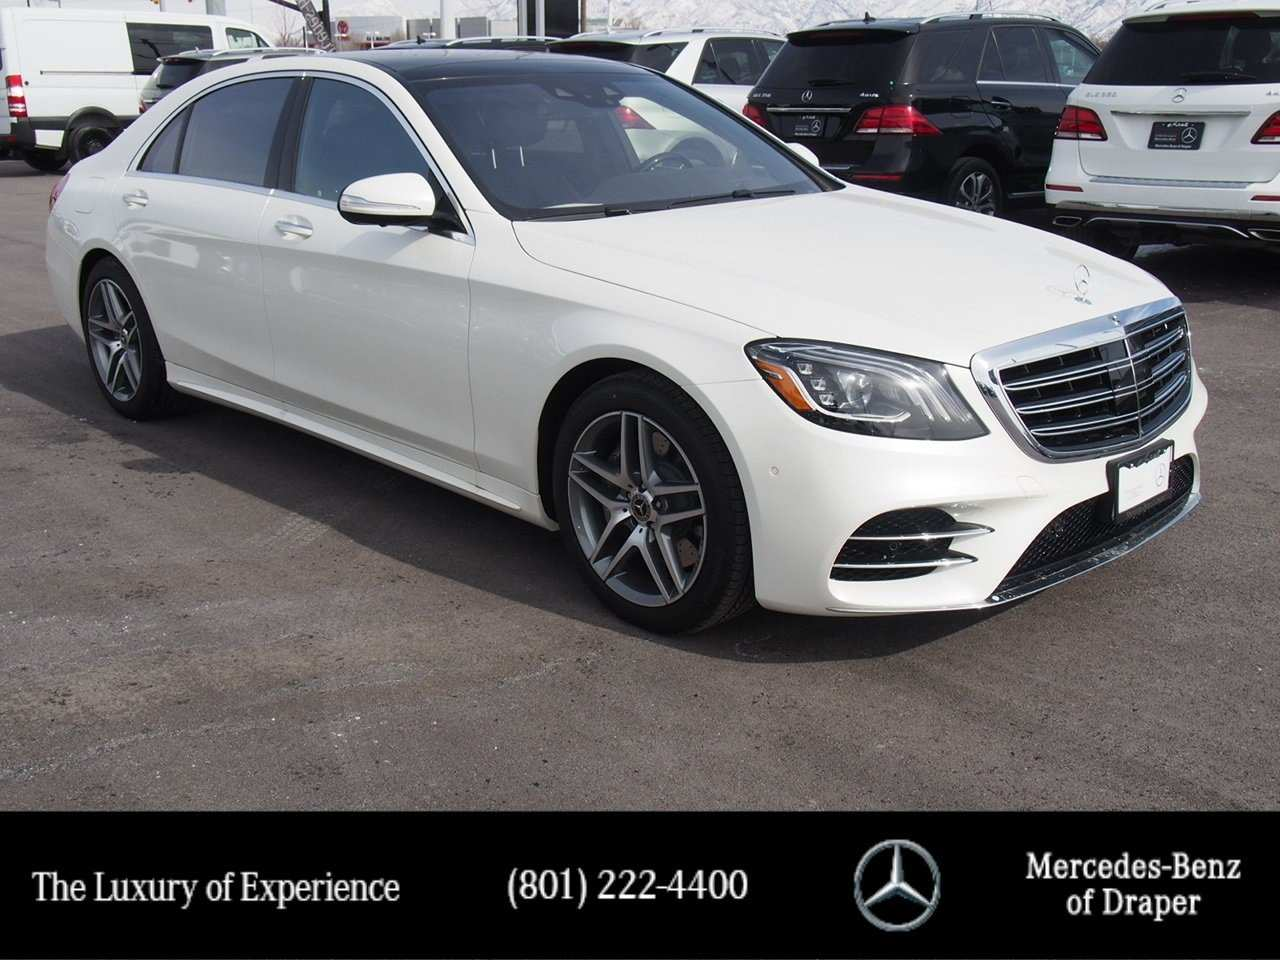 95 A S560 Mercedes 2019 Picture